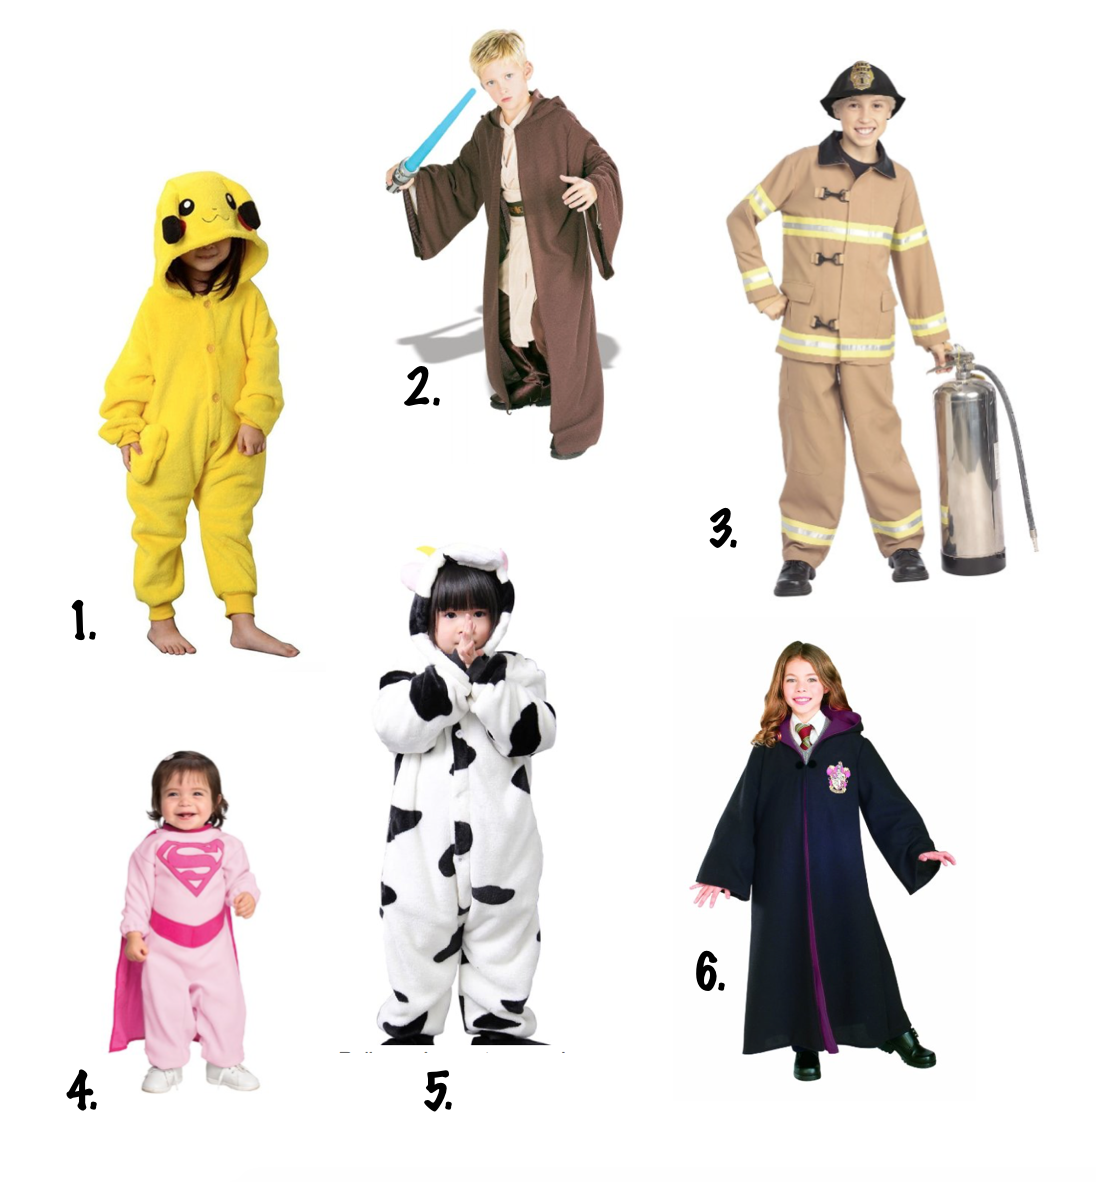 thefinchams.ca: Potential Halloween Costumes for Trick or Treating in Parry Sound Muskoka